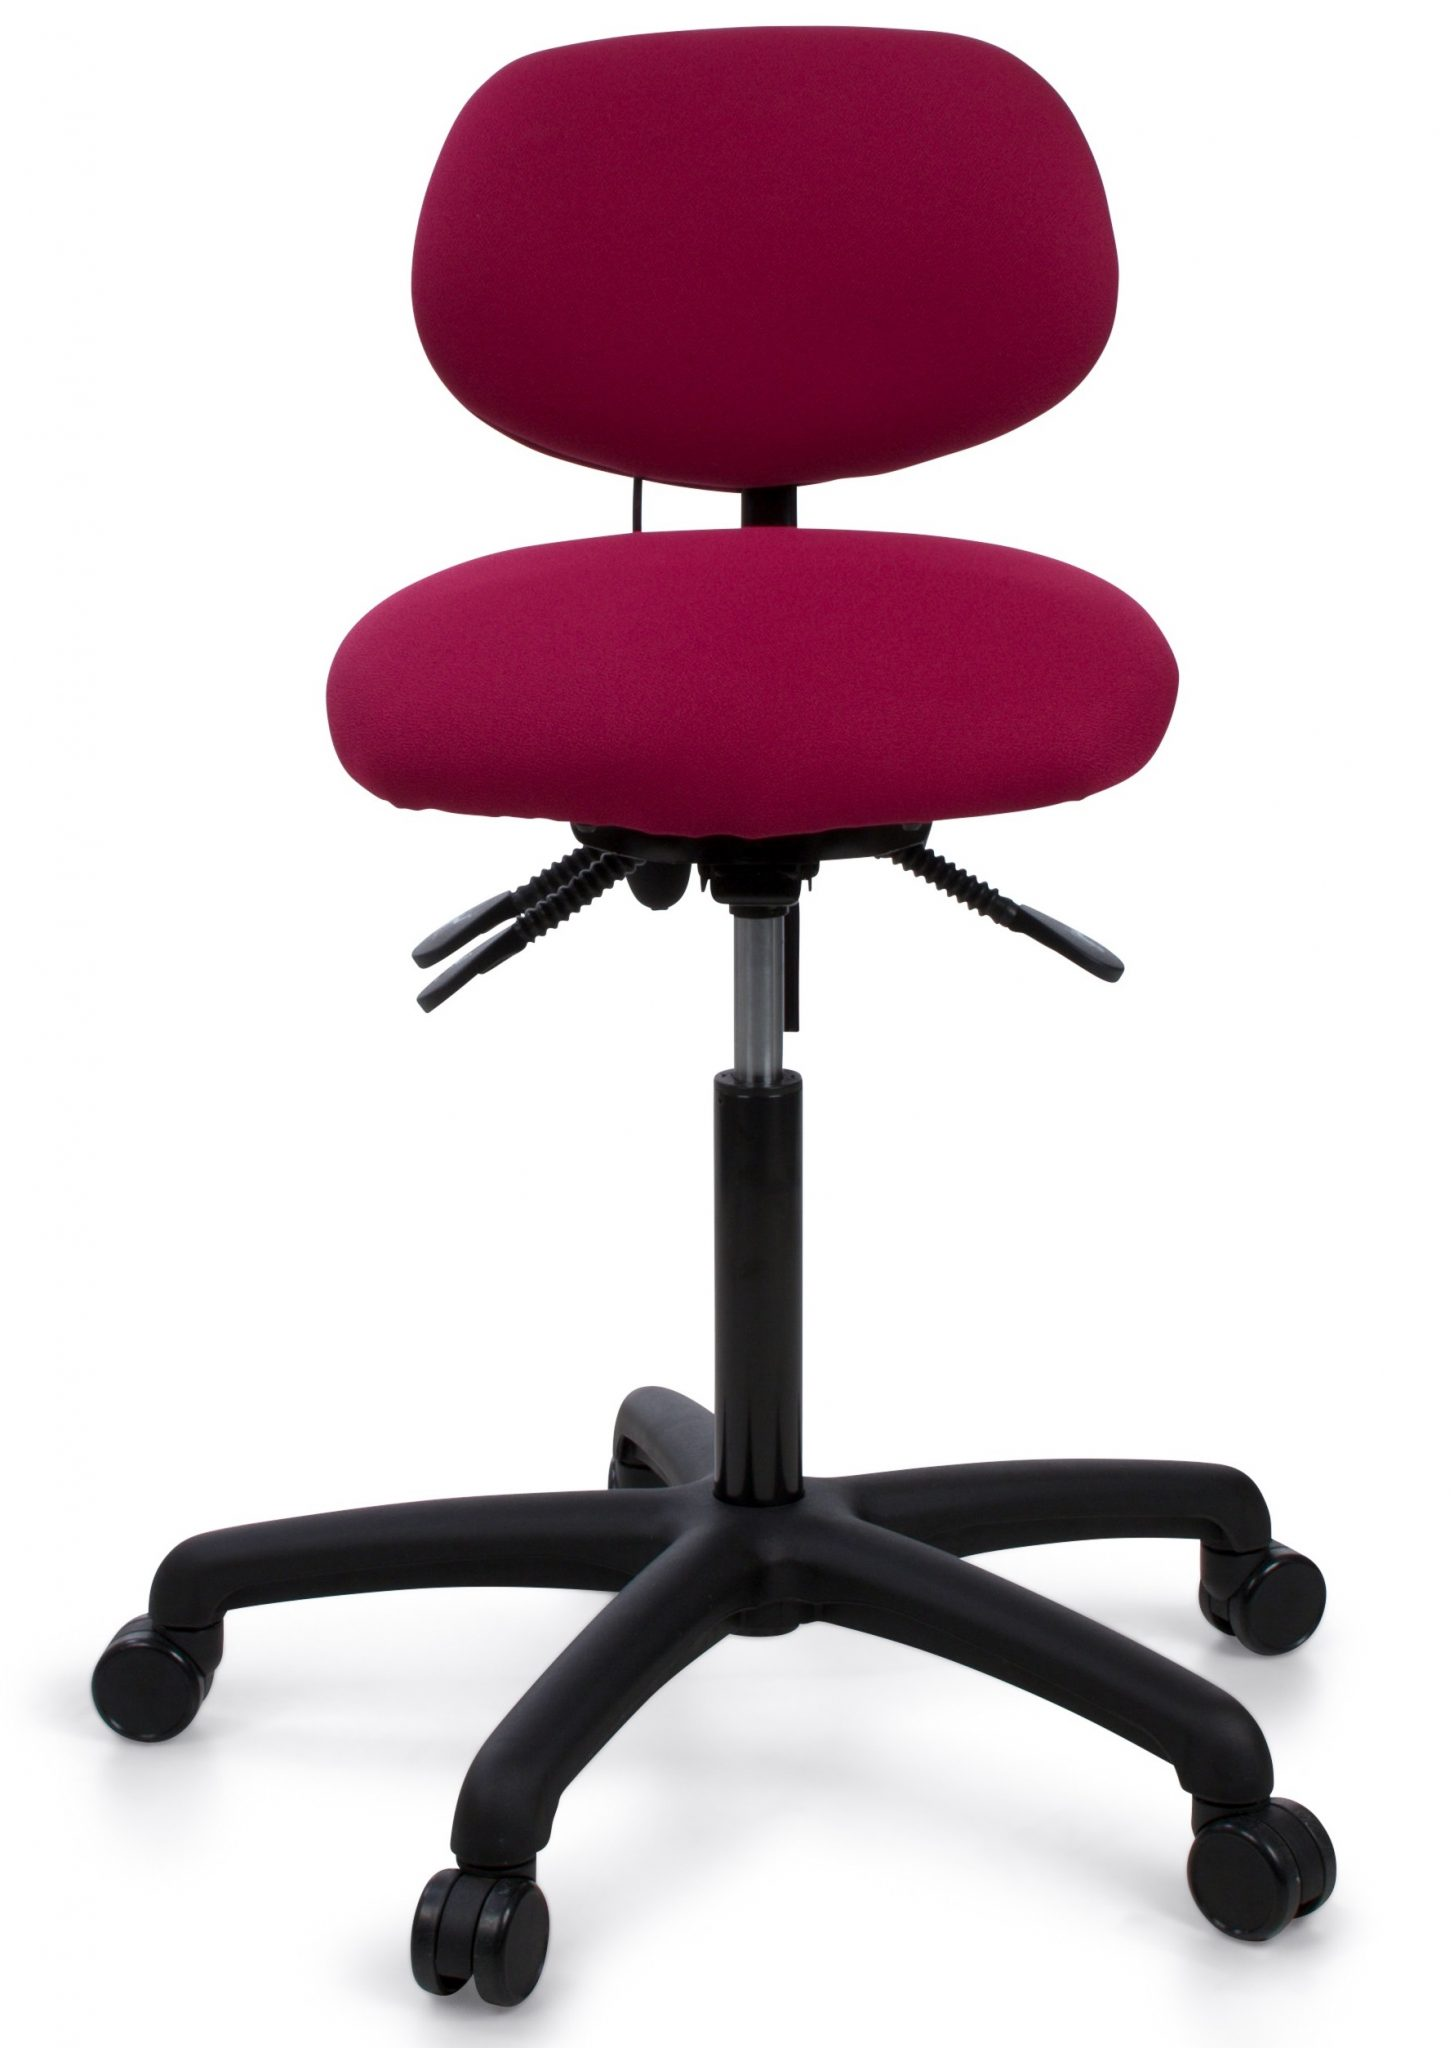 Sps 5 Sit Stand Chair Ergonomic Seating Solutions